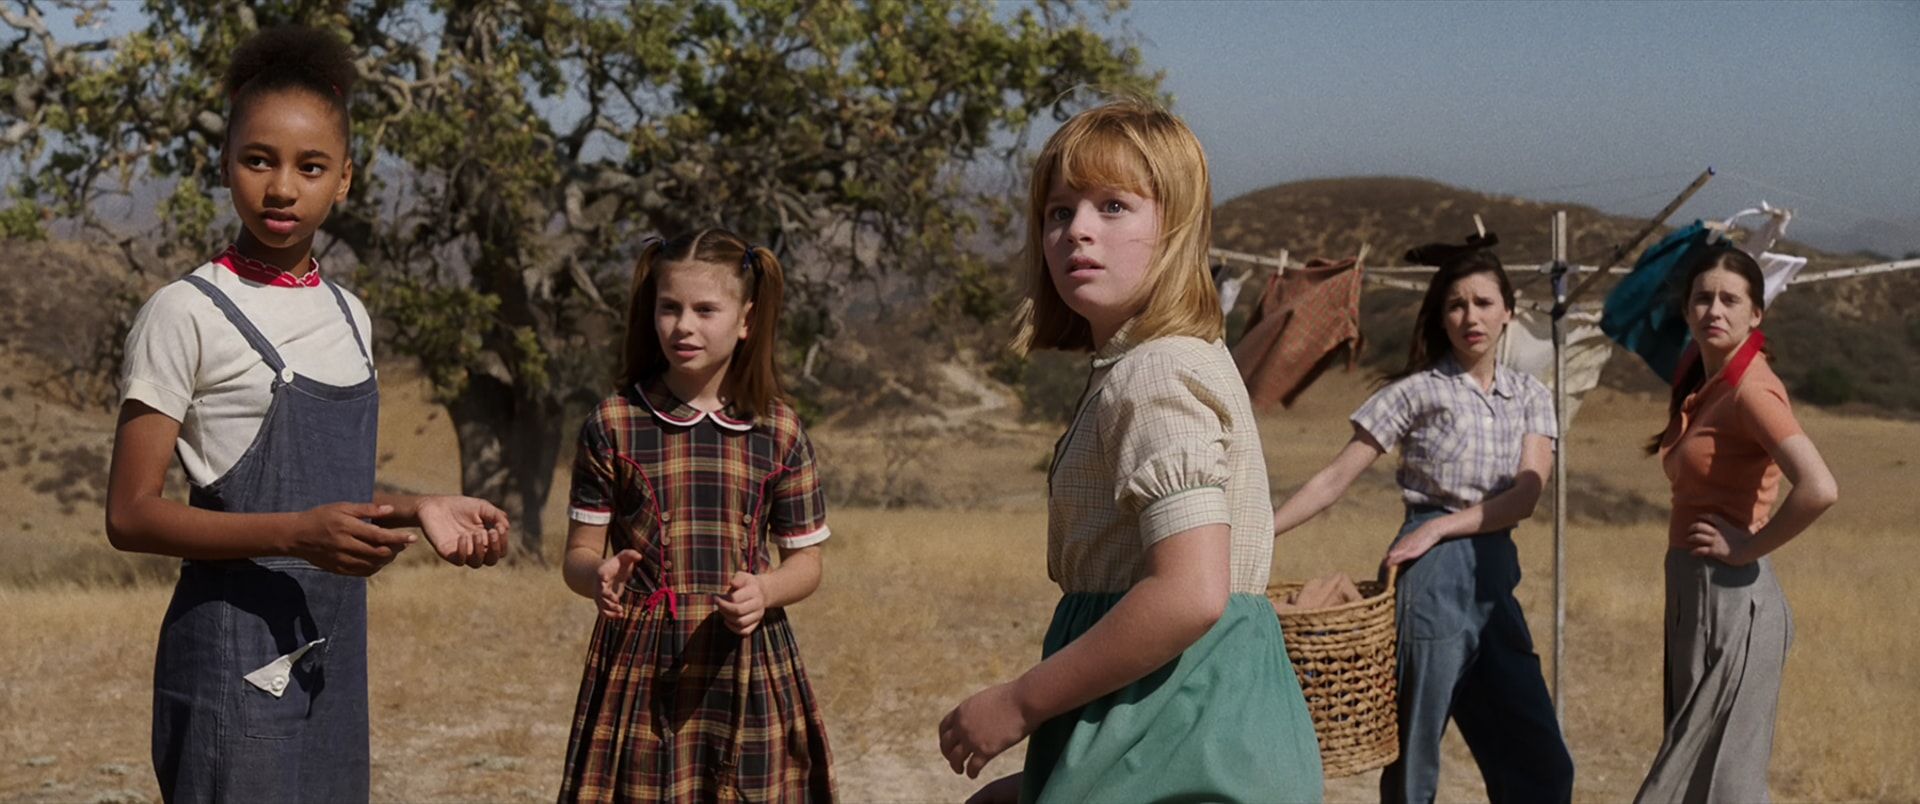 """TAYLER BUCK as Kate, LOU LOU SAFRAN as Tierney, LULU WILSON as Linda, GRACE FULTON as Carol and PHILIPPA COULTHARD as Nancy in New Line Cinema's supernatural thriller """"ANNABELLE: CREATION,"""" a Warner Bros. Pictures release."""